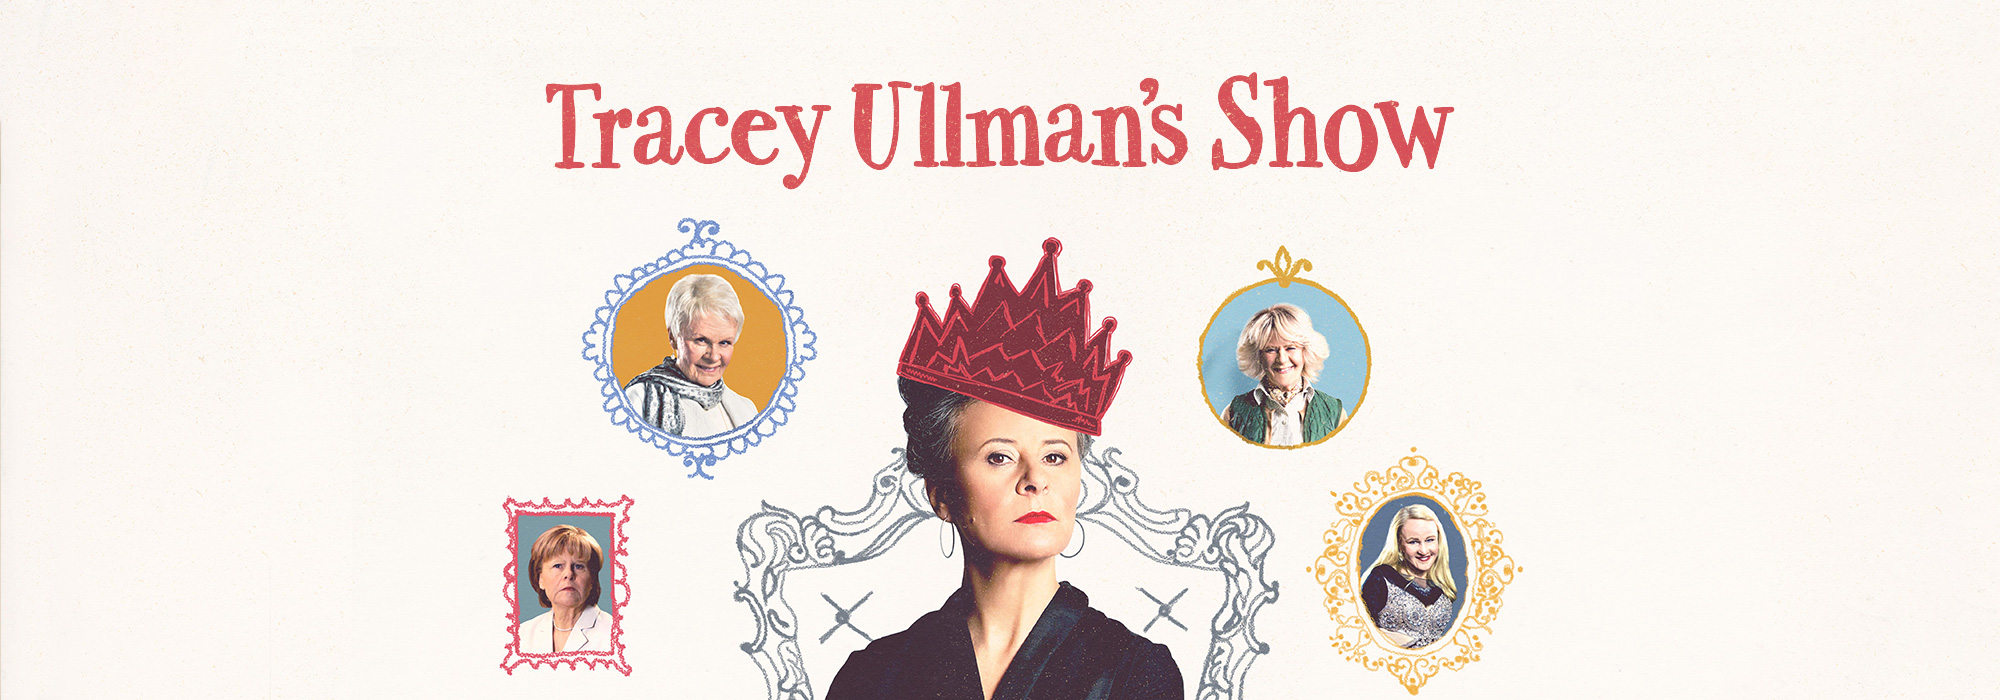 Tracey Ullmans Show